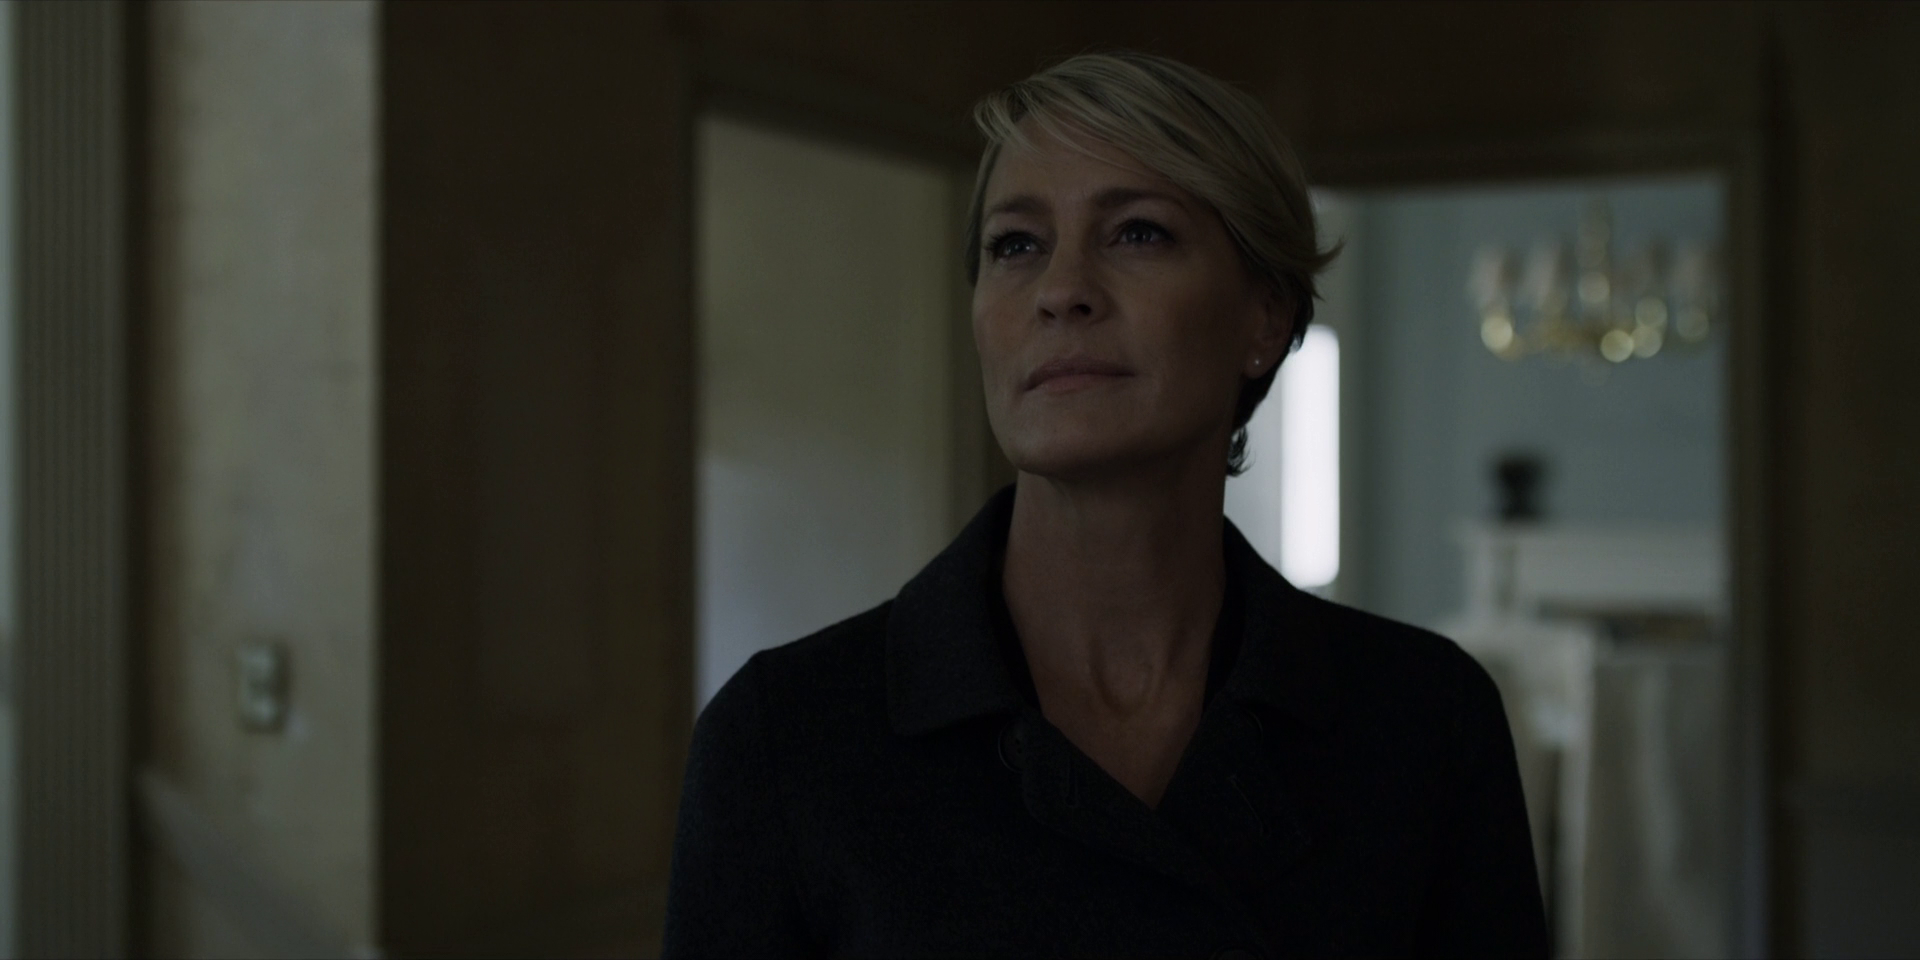 House of Cards - Stagione 4 (2016) (Completa) WEBMux 1080P ITA ENG AC3 x264 mkv Vlcsnap-2018-10-17-2068d8b